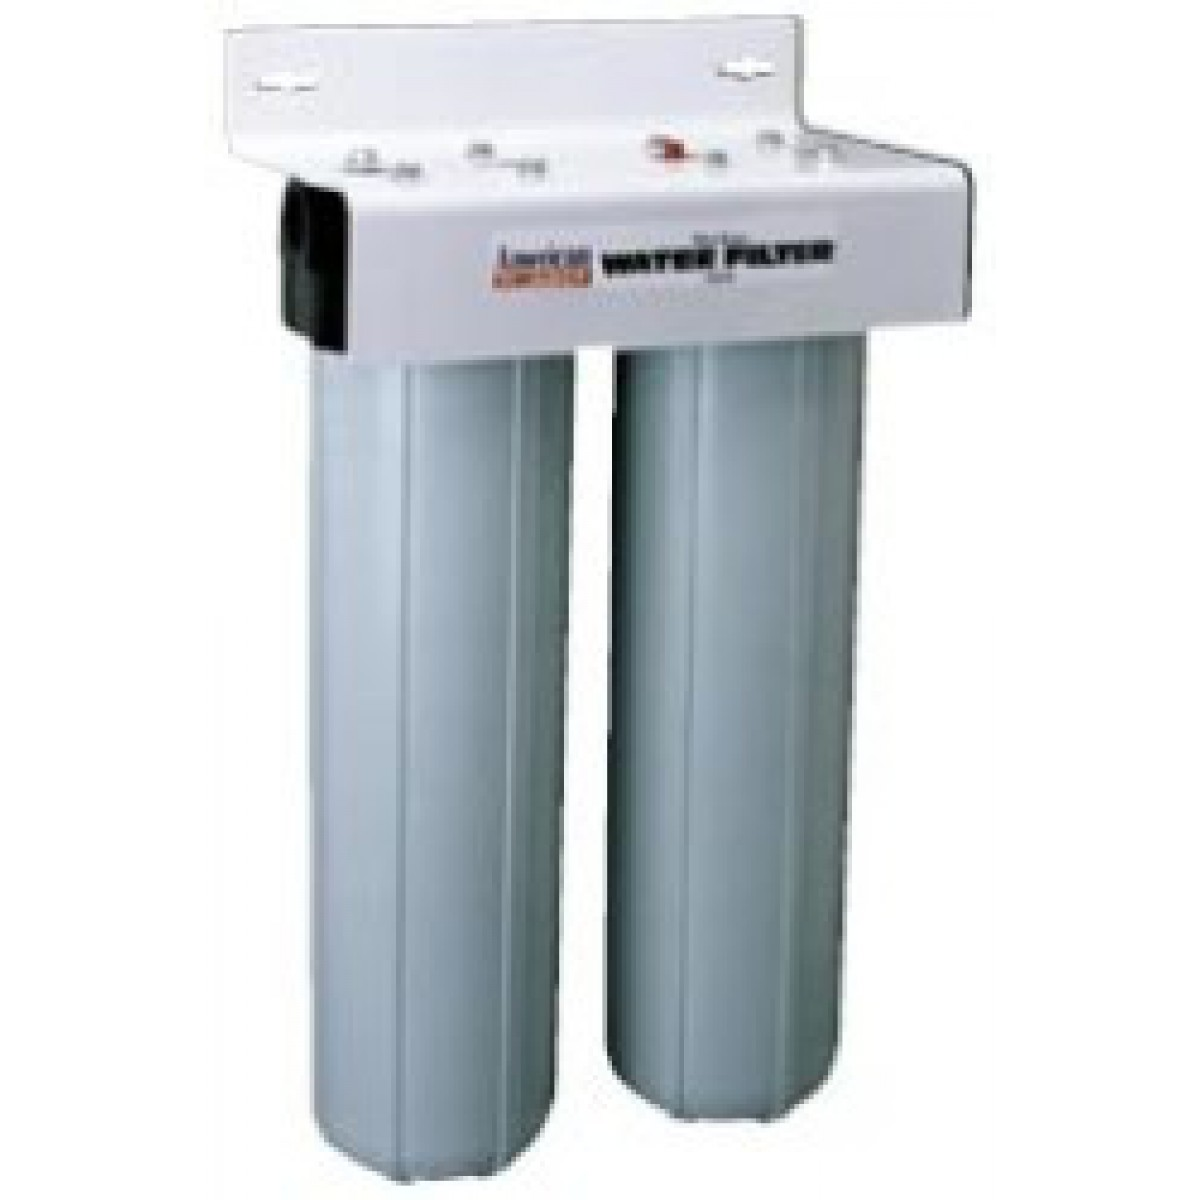 American Plumber WWHC Whole House Water Filtration System 152022